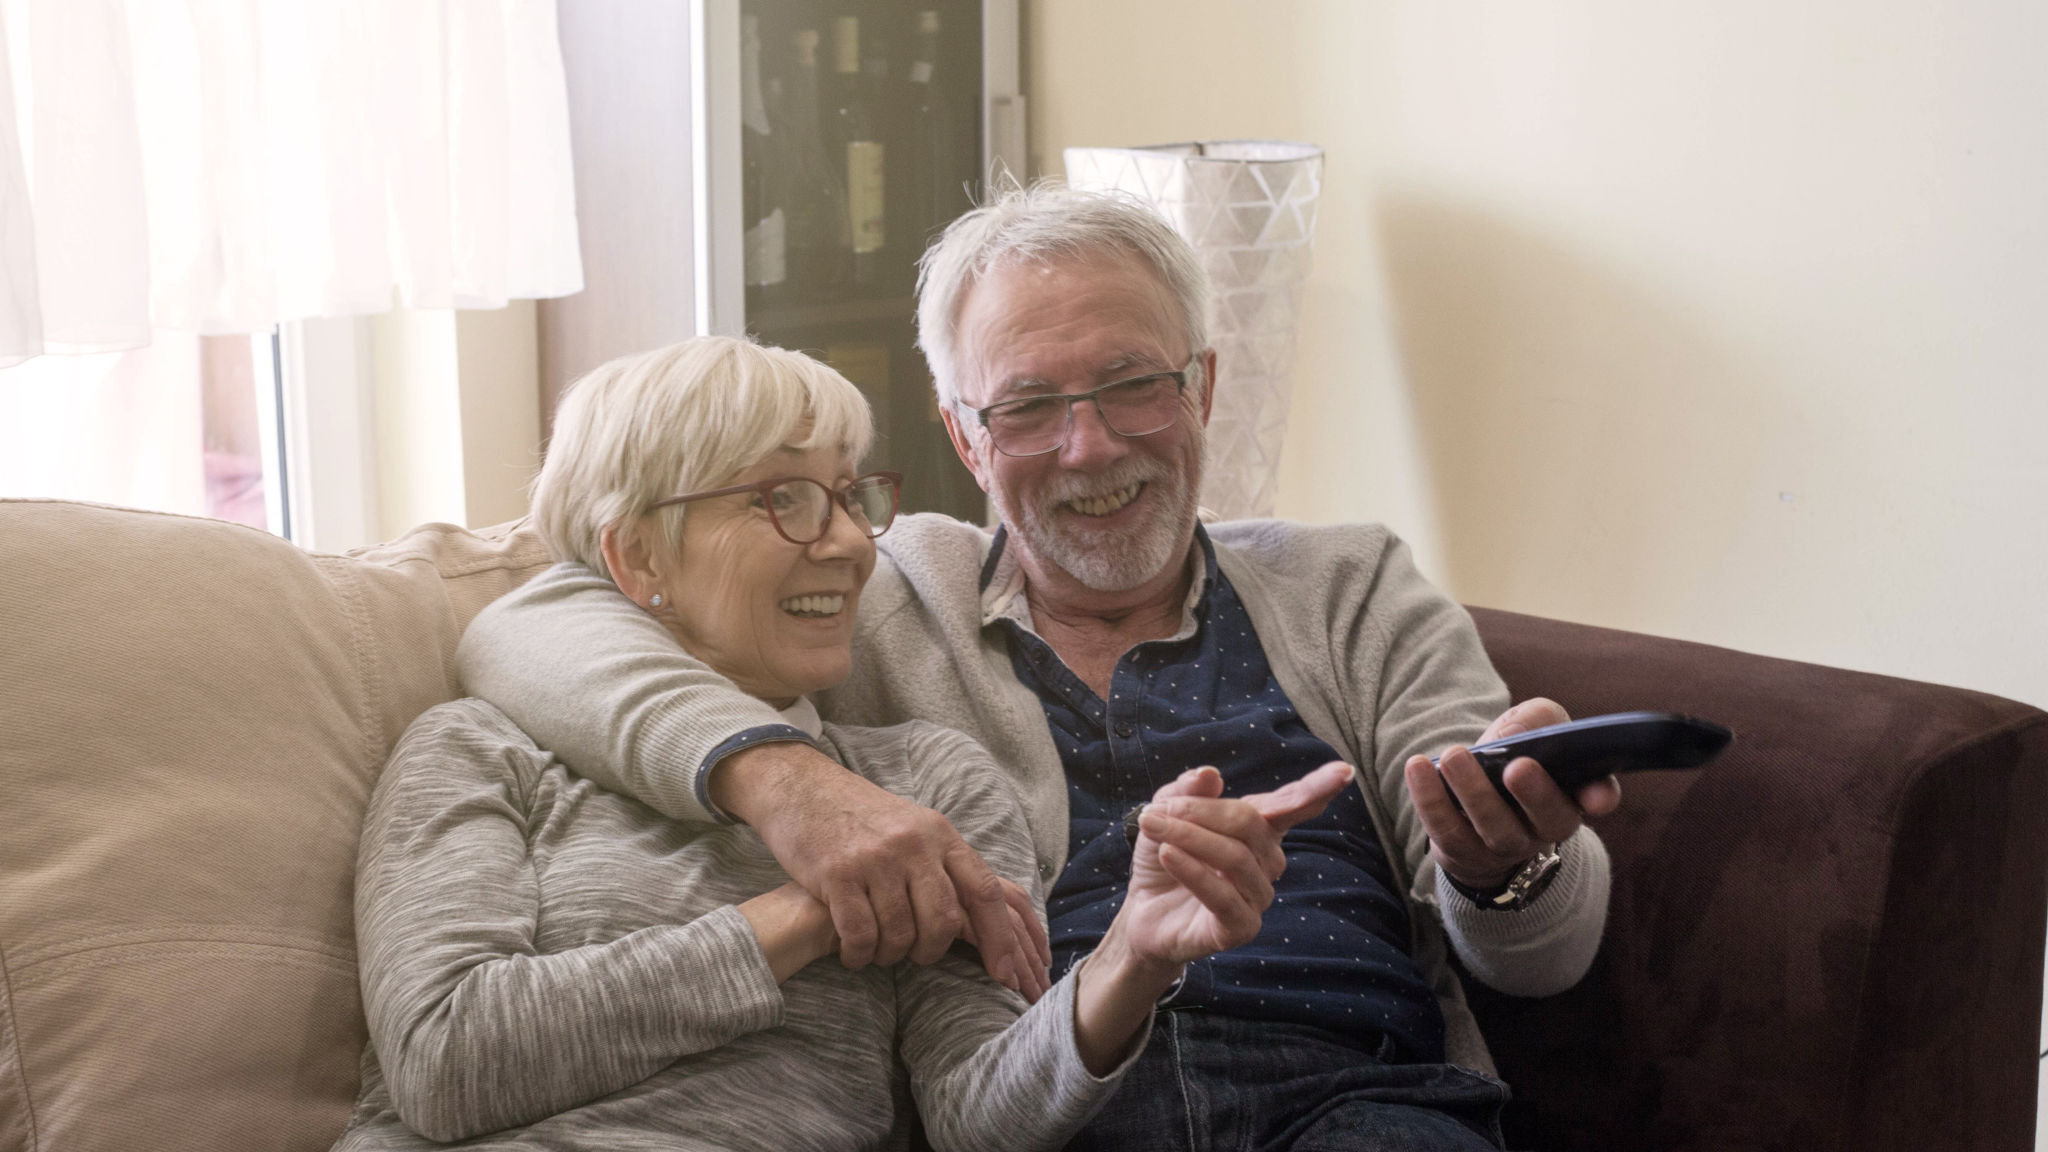 Reinventing retirement: how to live a fulfilling later life